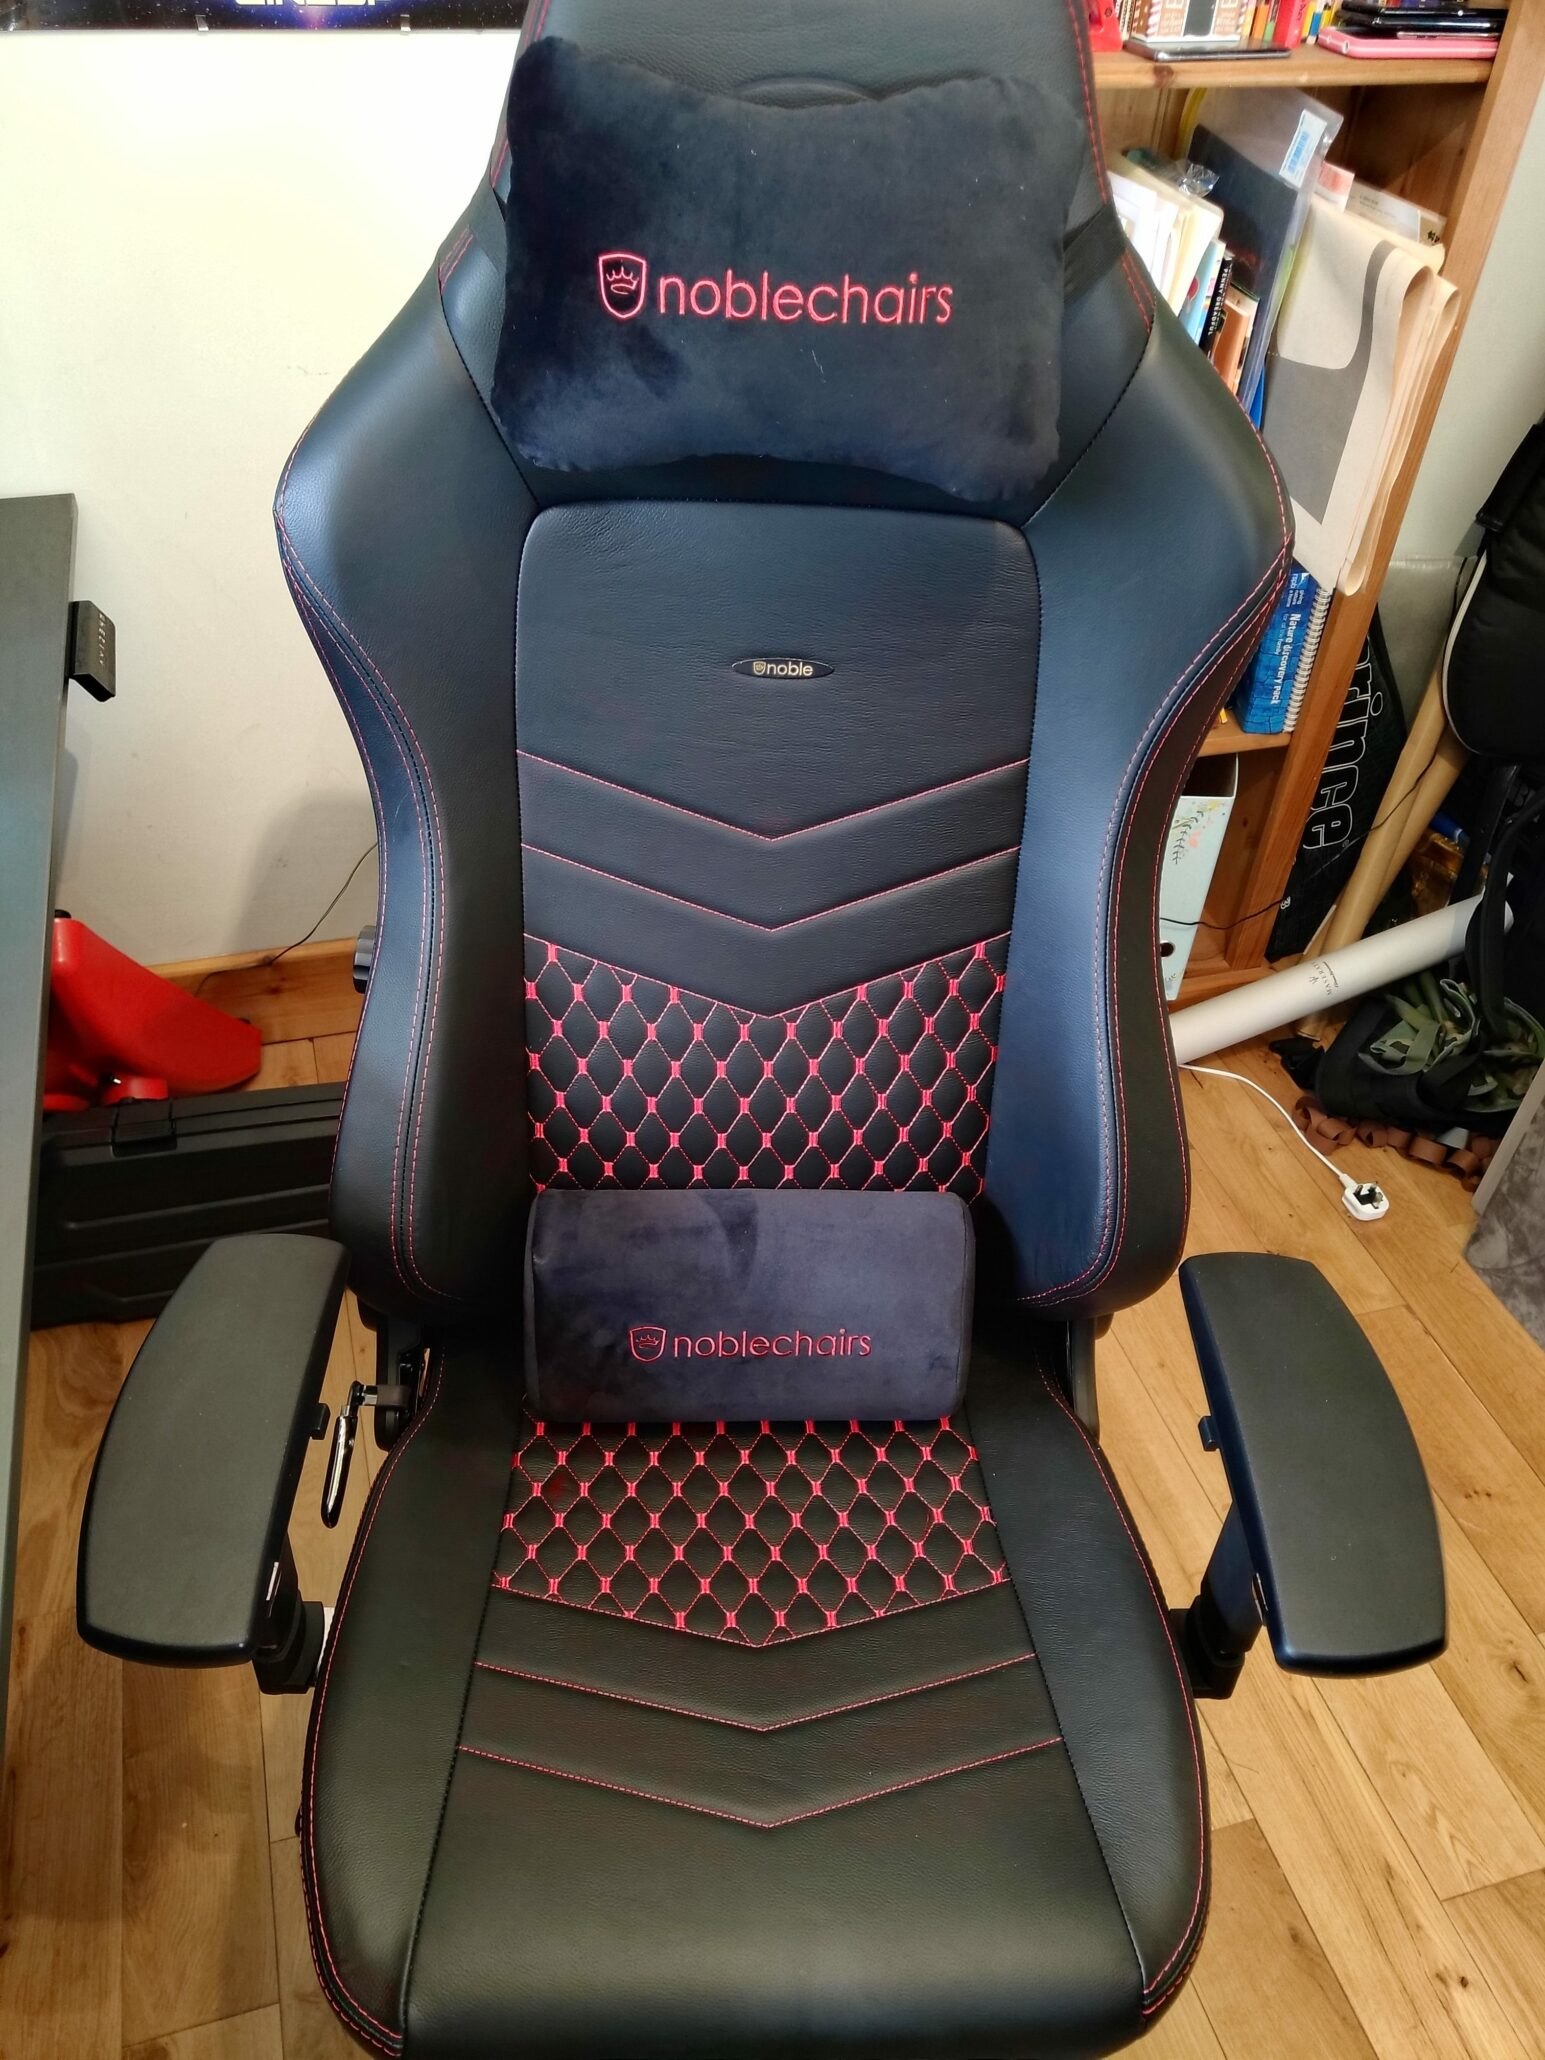 noblechairs-hero-with-cushions